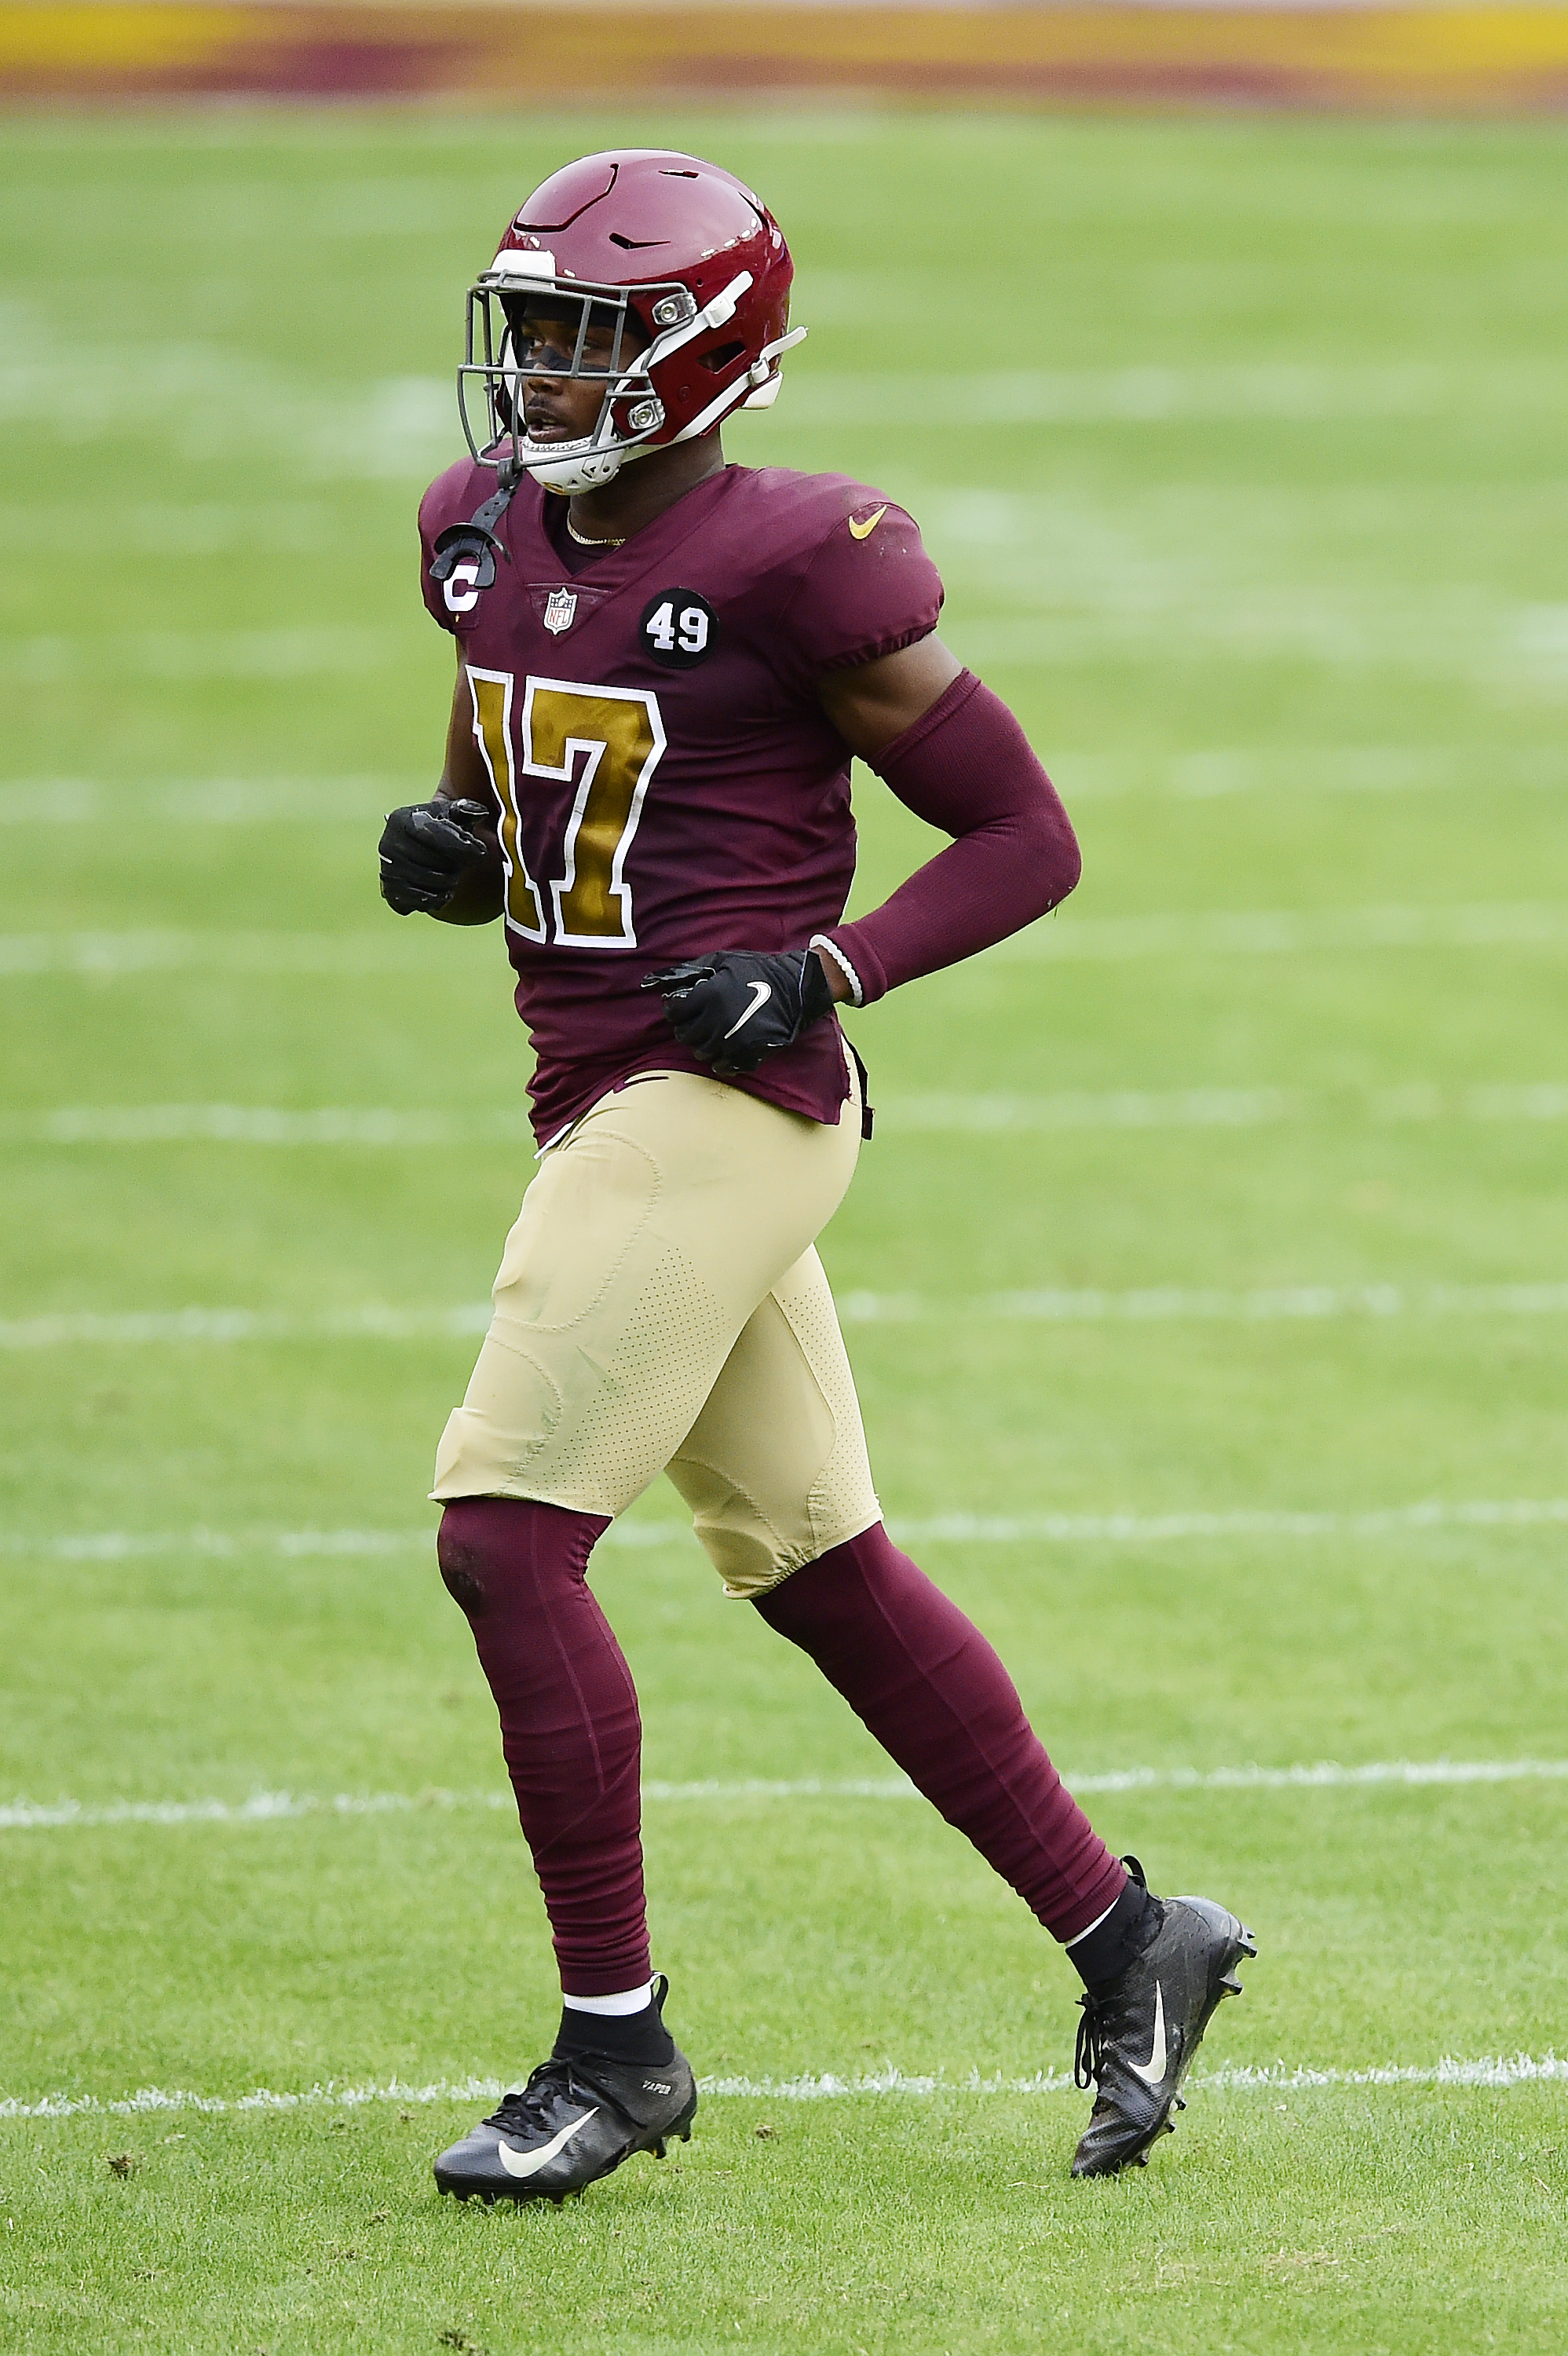 Terry McLaurin #17 of the Washington Football Team in action in the second half against the Cincinnati Bengals at FedExField on November 22, 2020 in Landover, Maryland.